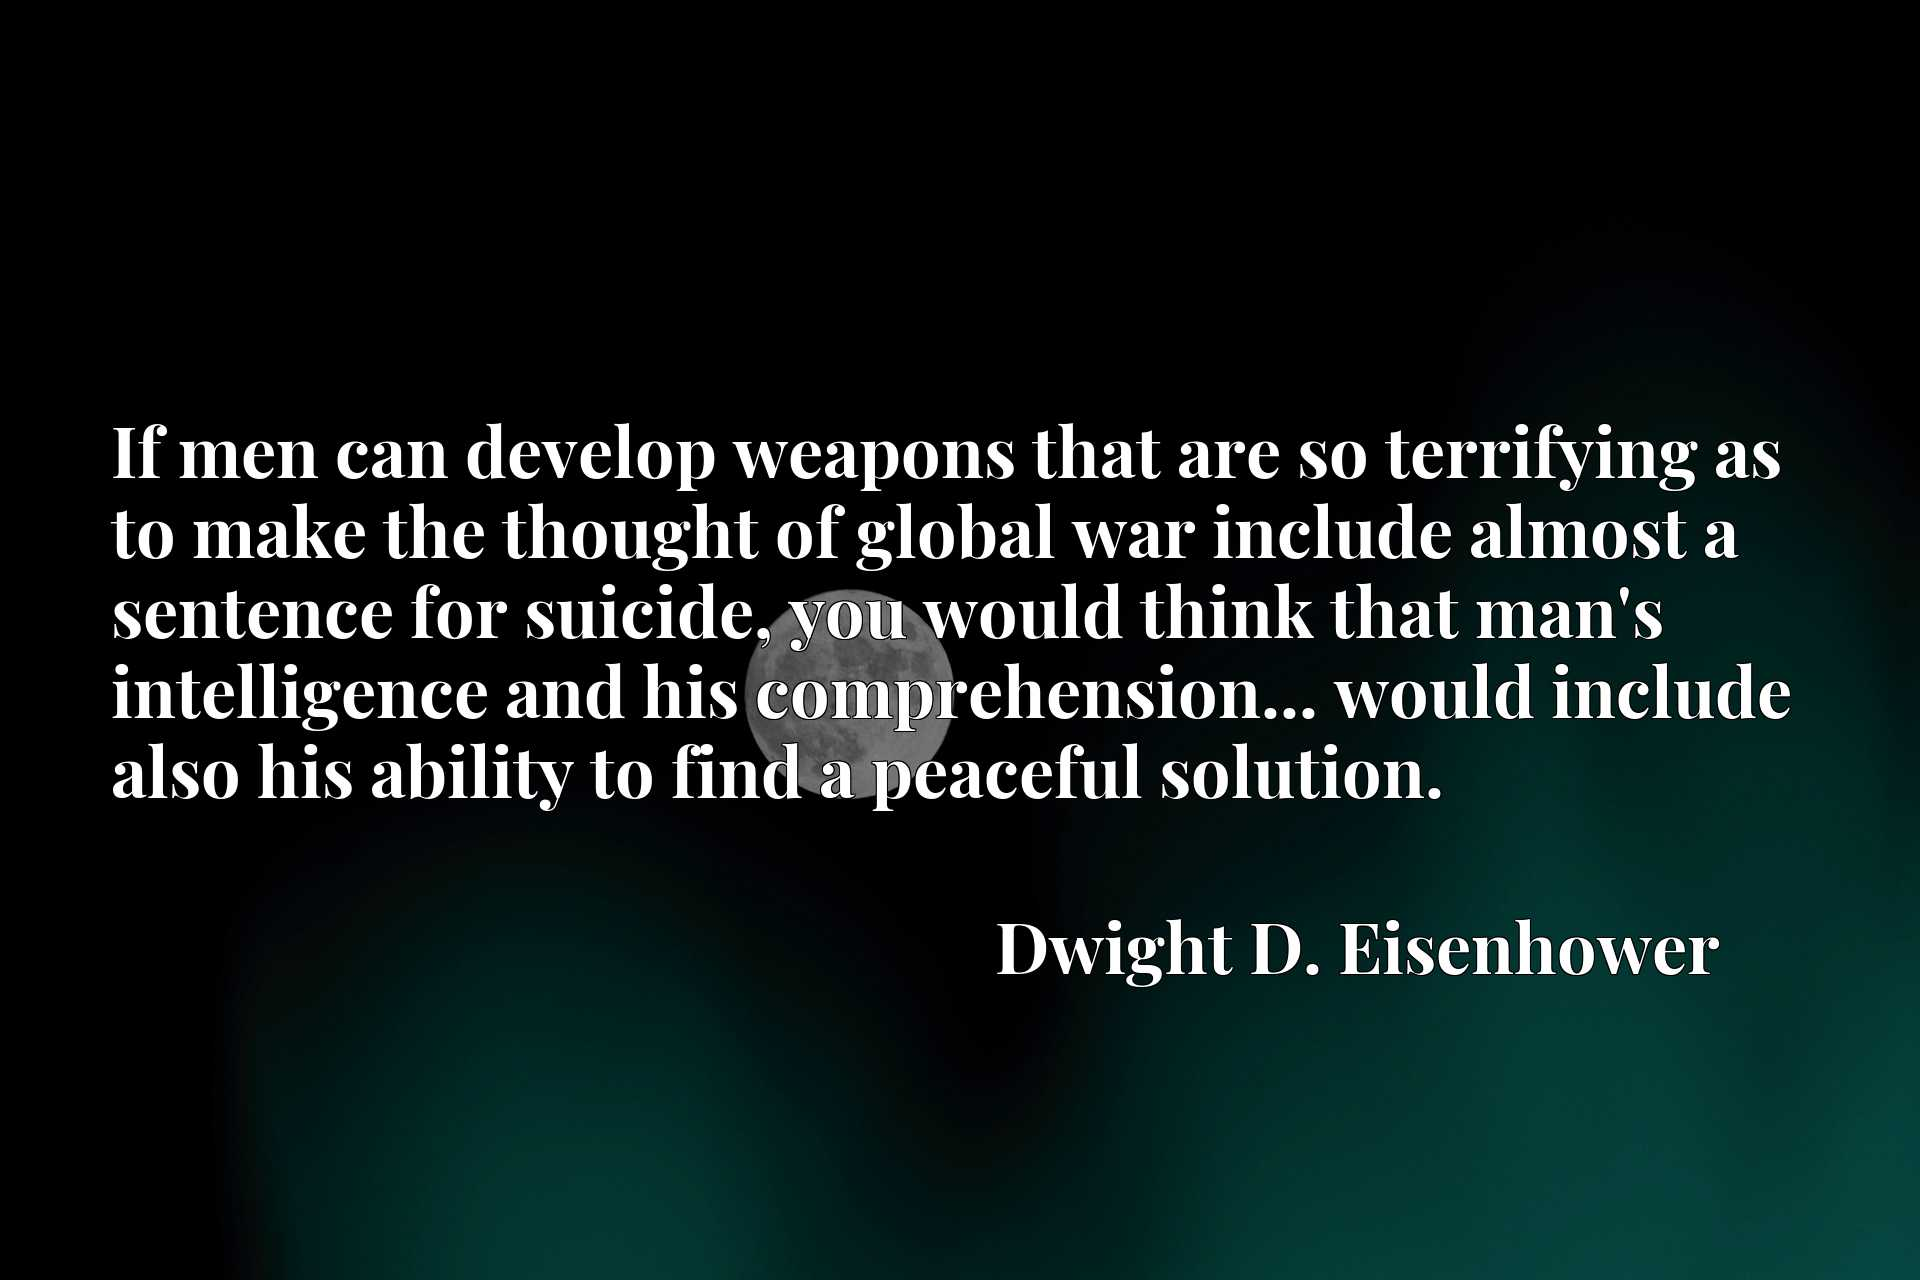 If men can develop weapons that are so terrifying as to make the thought of global war include almost a sentence for suicide, you would think that man's intelligence and his comprehension... would include also his ability to find a peaceful solution.